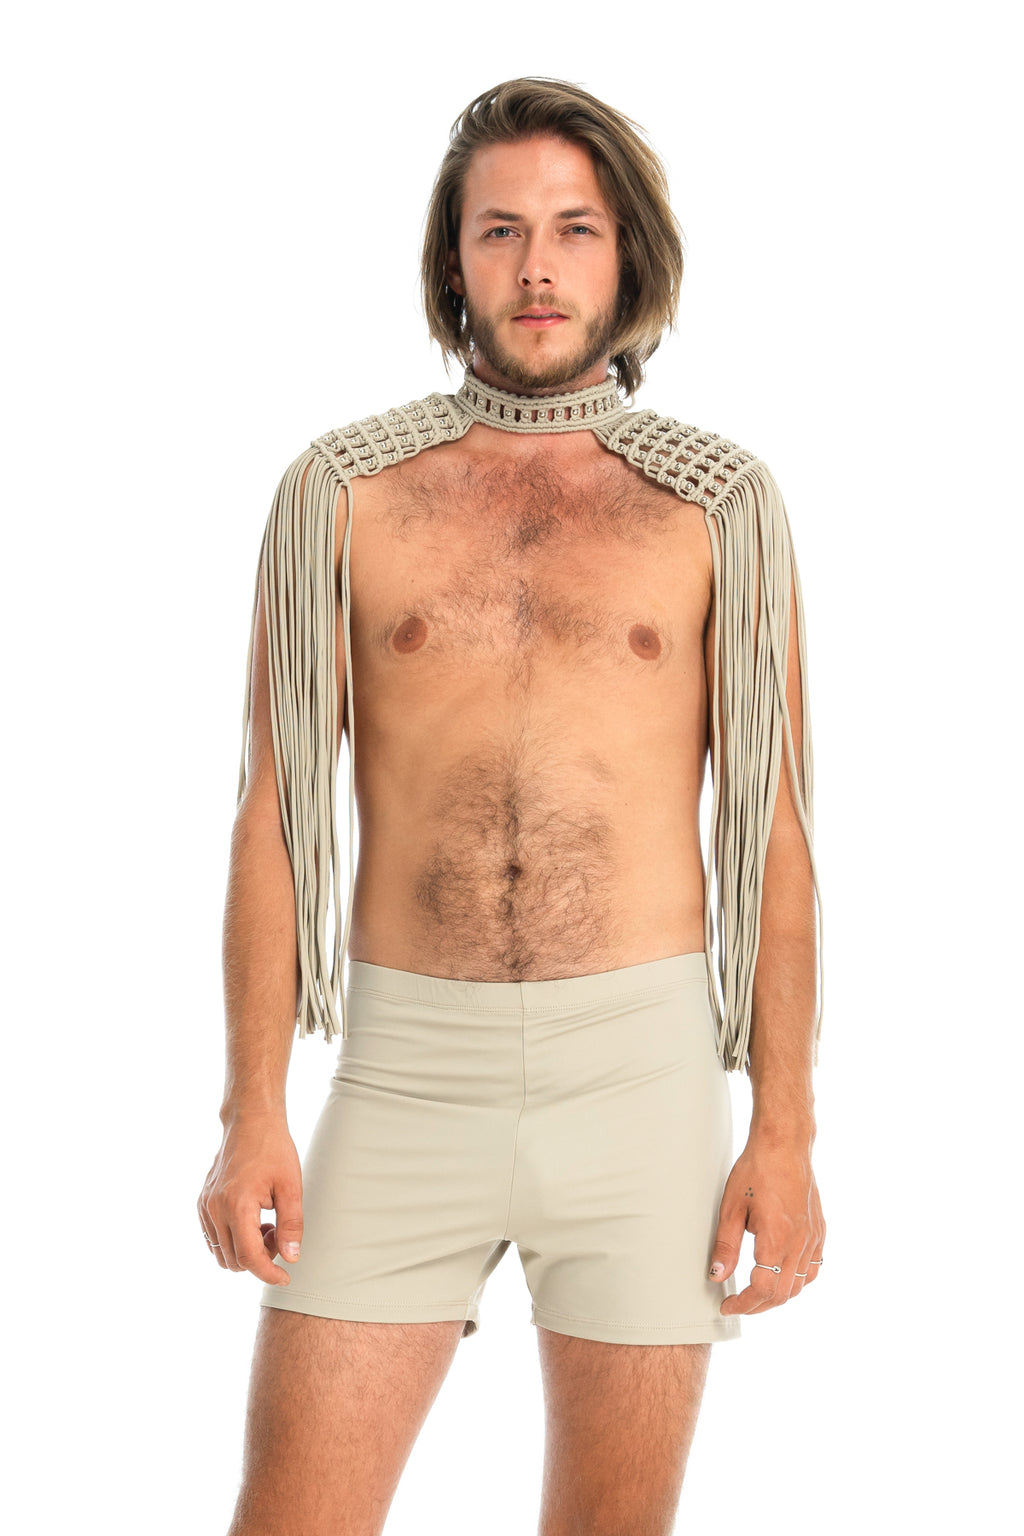 ORACLE DAWN EPAULETTES 2 MENS | Nude